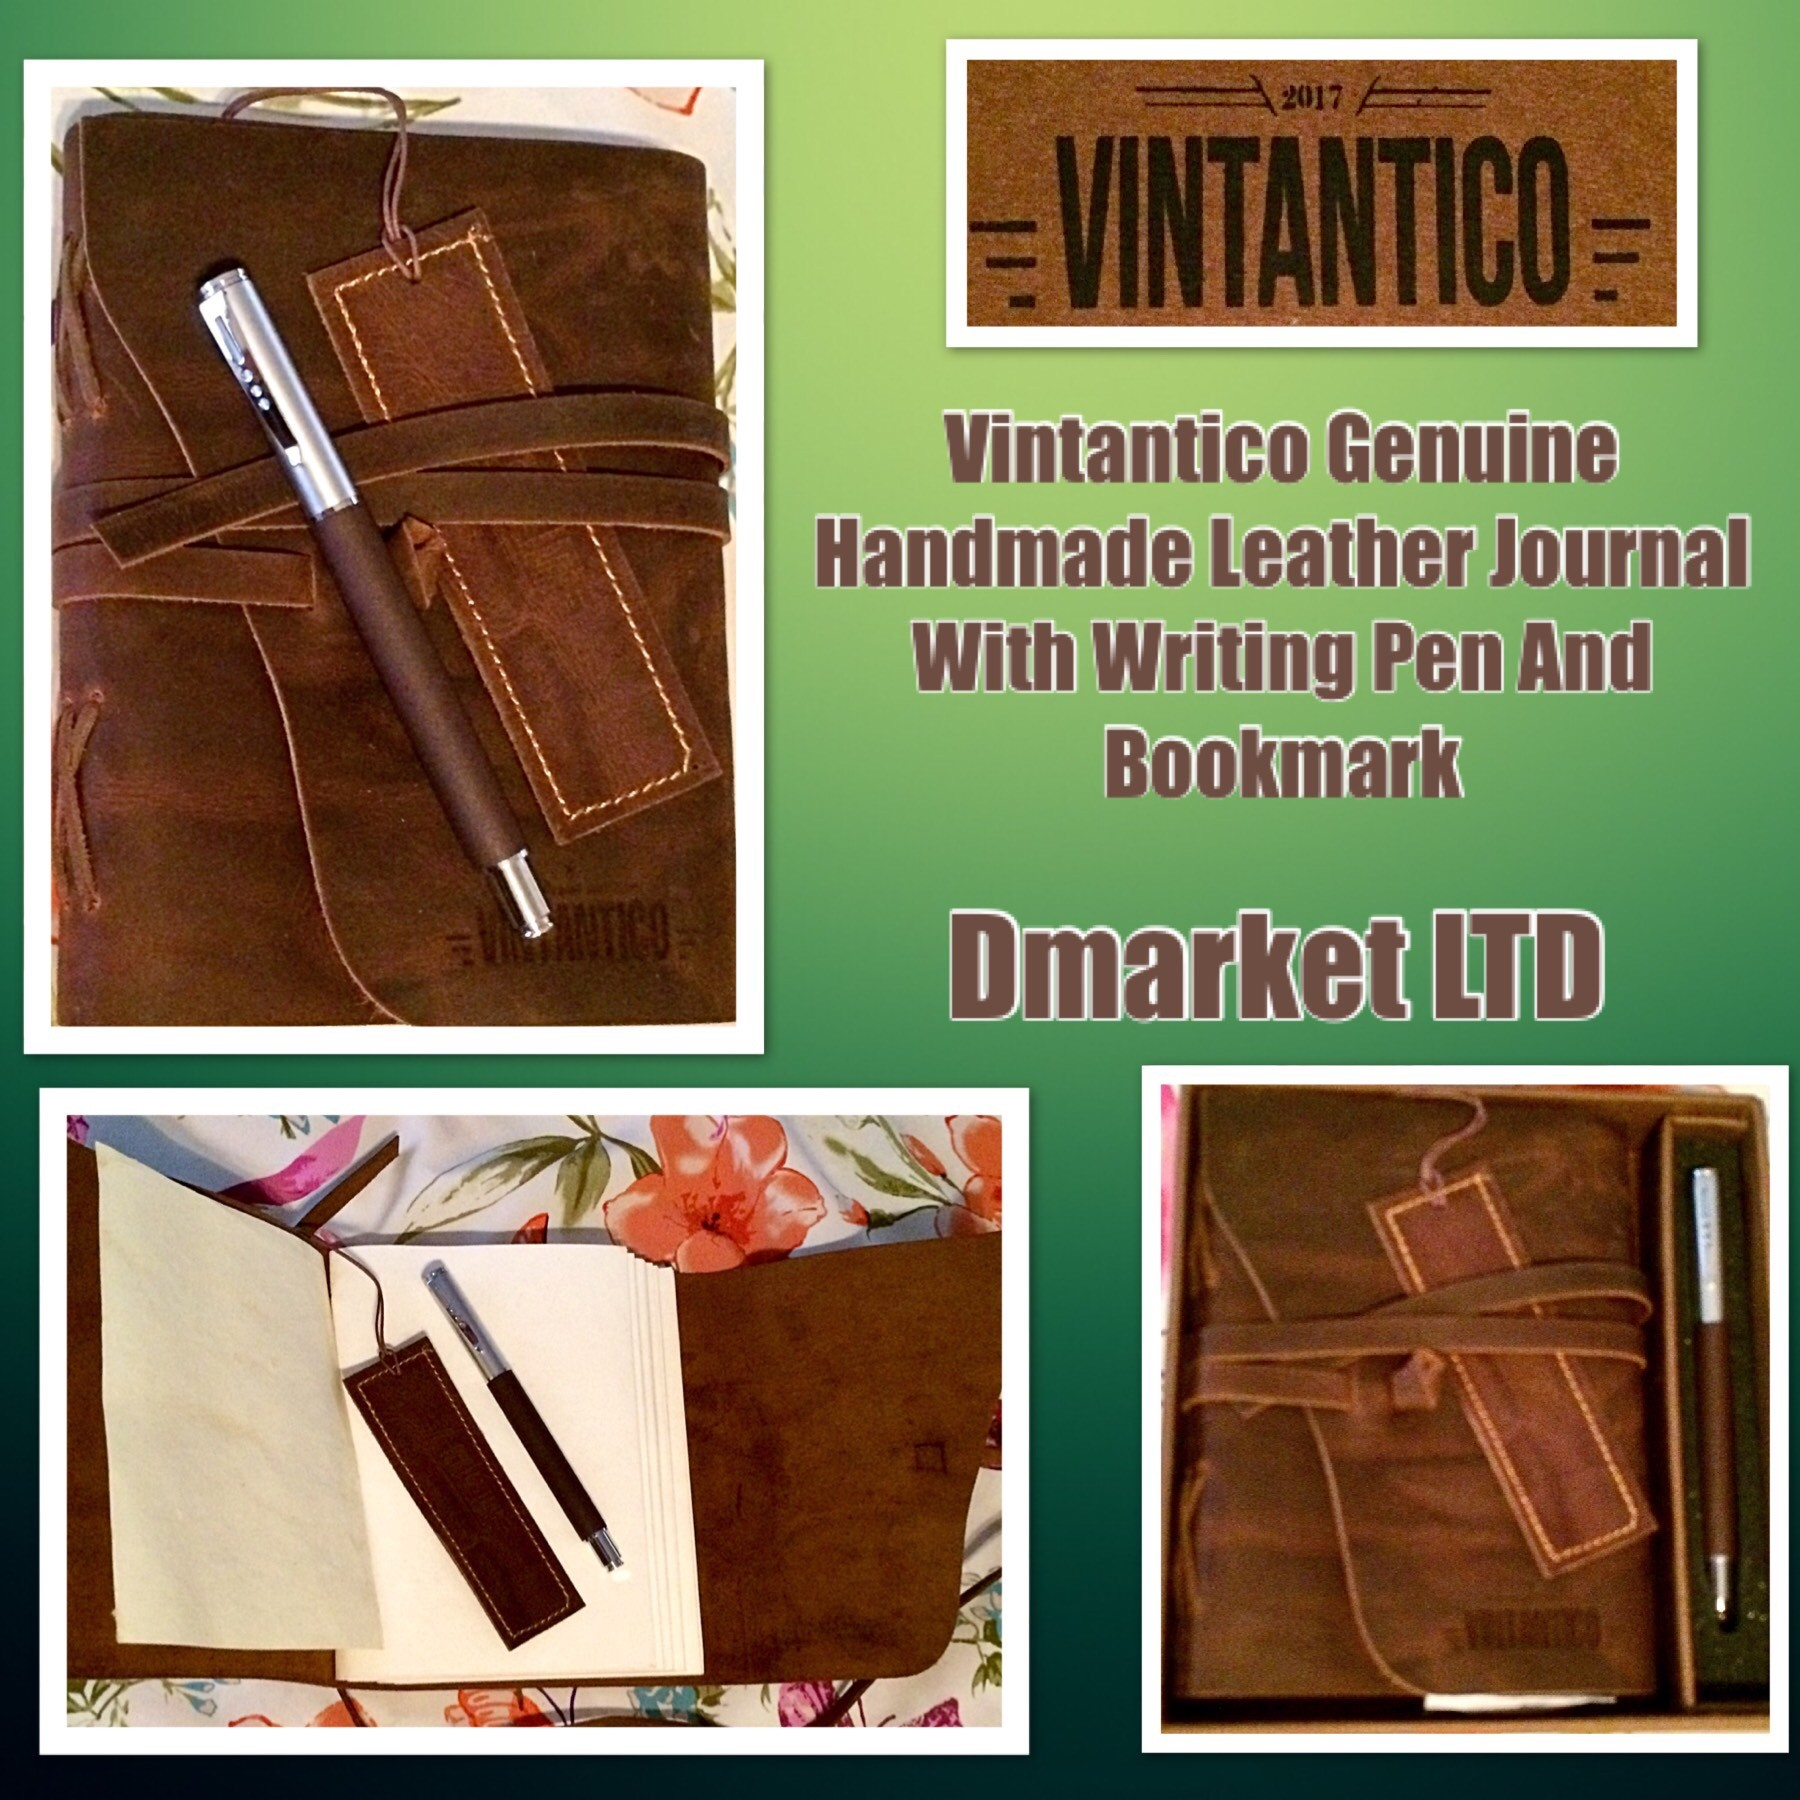 Vintantico Genuine Leather Journal With Writing Pen (Brown) Vintage, Bound, Handmade Cover Recycled Unlined Paper | Men's & Womens's Personal Notepad | Incl. Bookmark, Giftbox